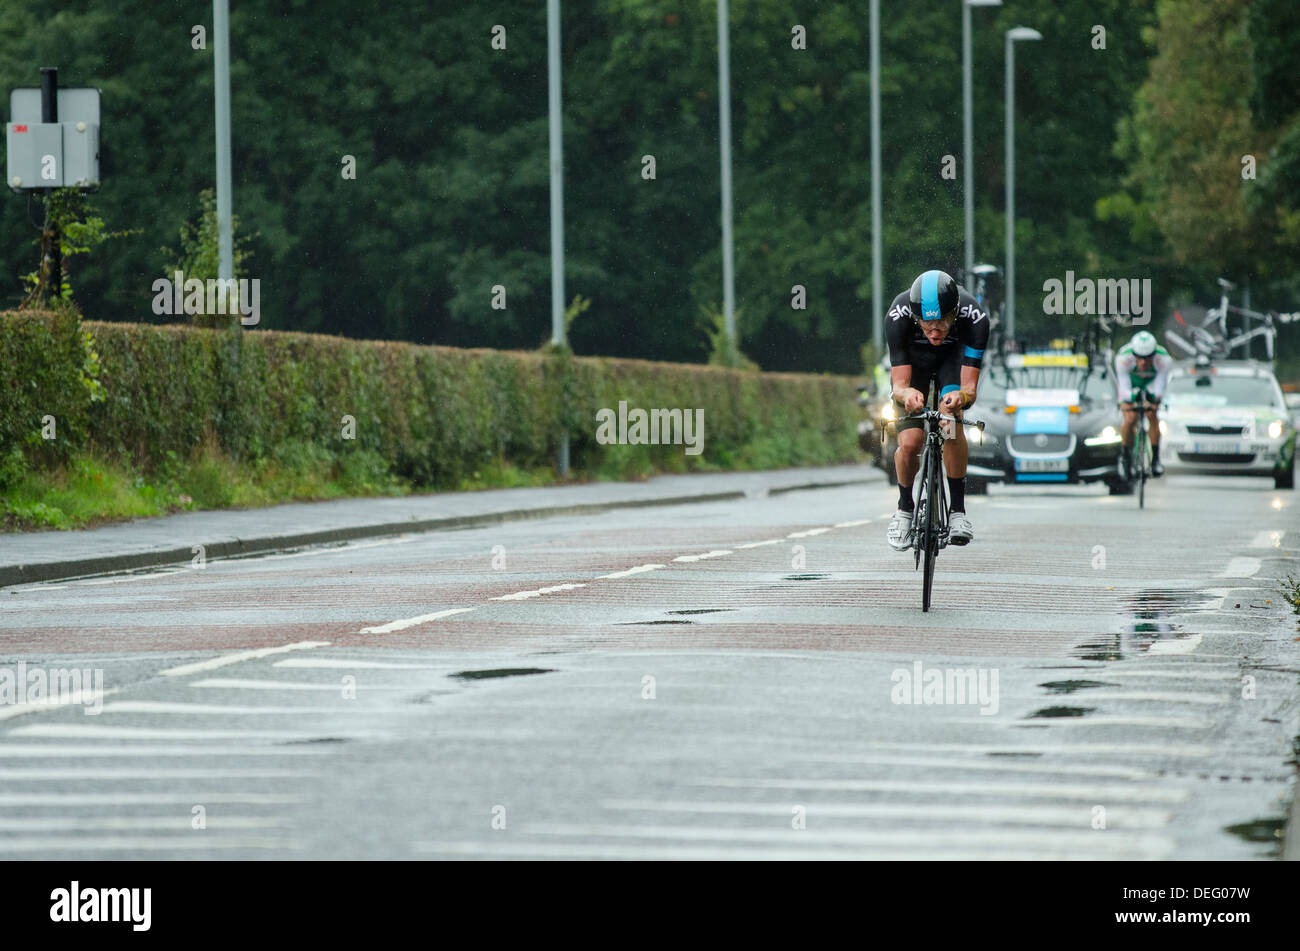 Josh Edmondson of Sky Procycling in Stage 3 of the 2013 Tour of Britain, a 16km individual time trial at Knowsley, Merseyside - Stock Image